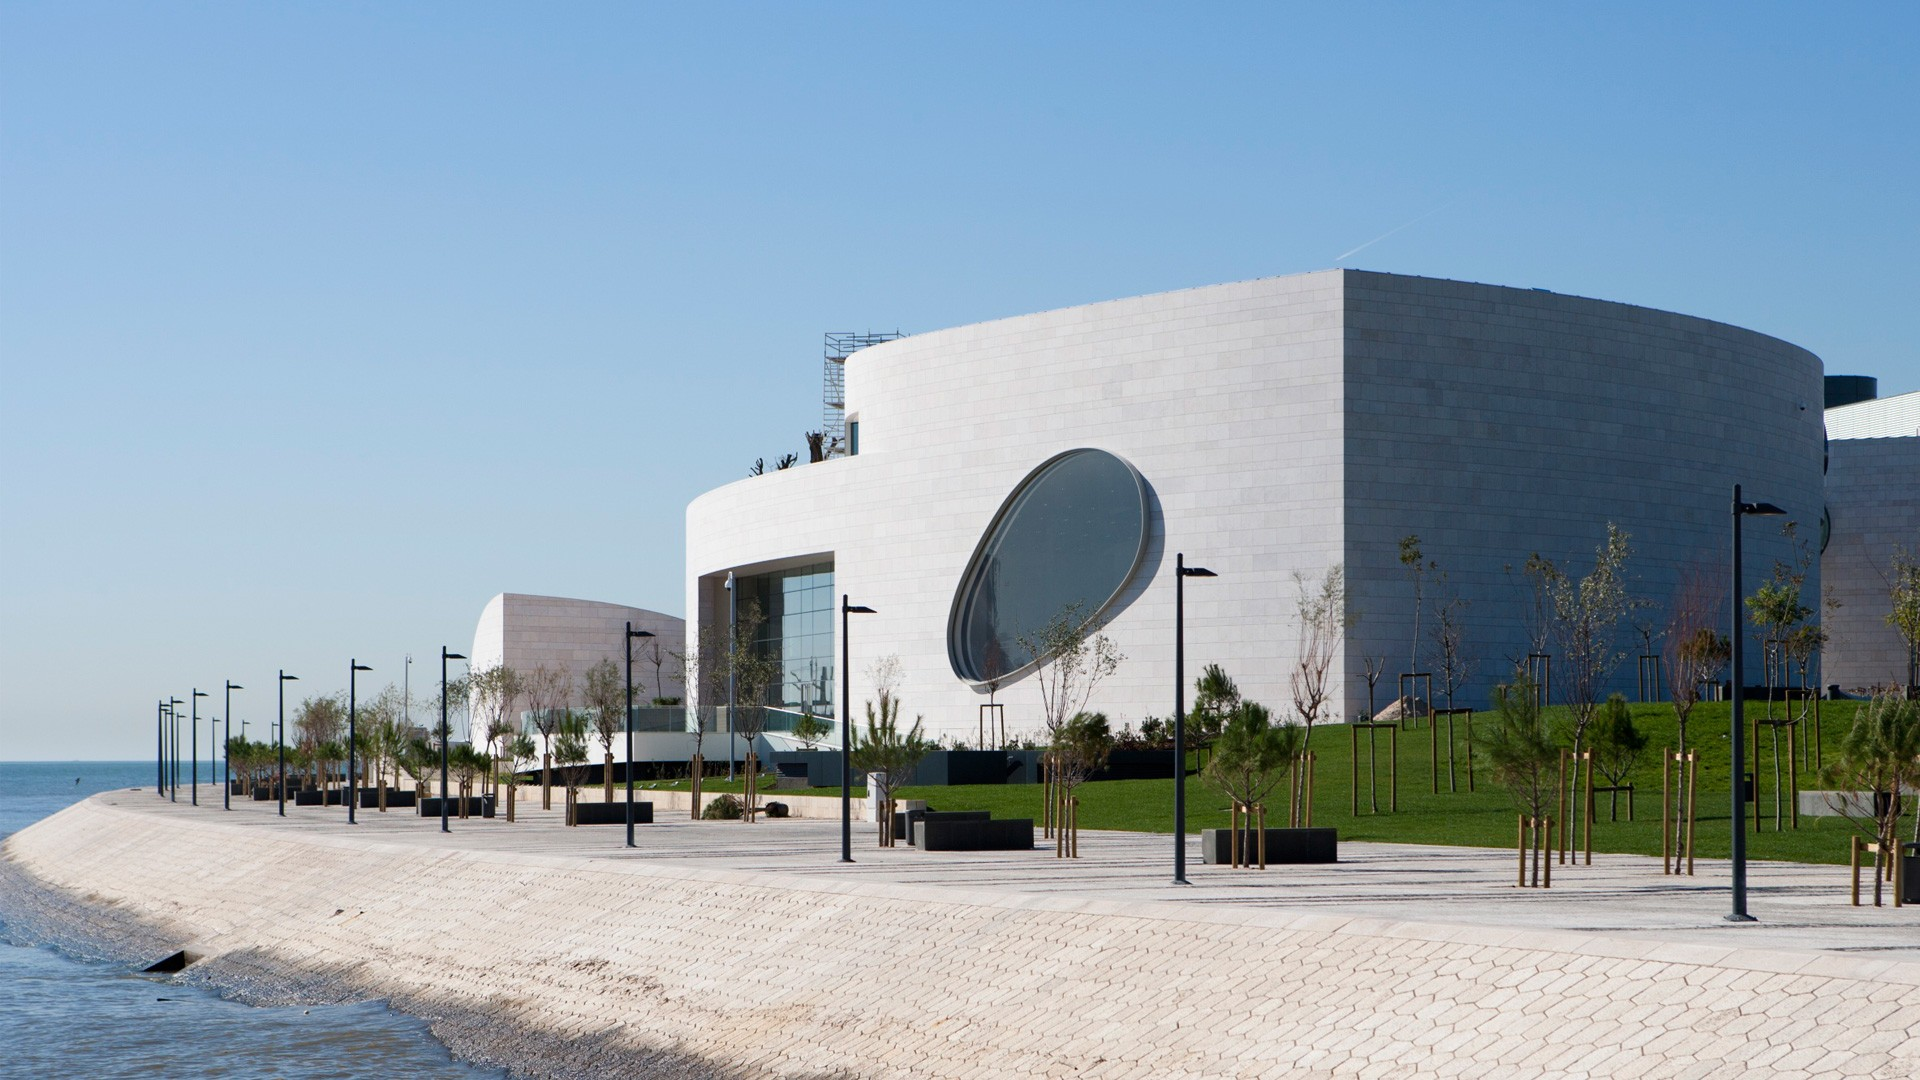 Champalimaud Foundation champalimaud foundation Champalimaud Foundation is the Centre For the Unknown Champalimaud Foundationl 5